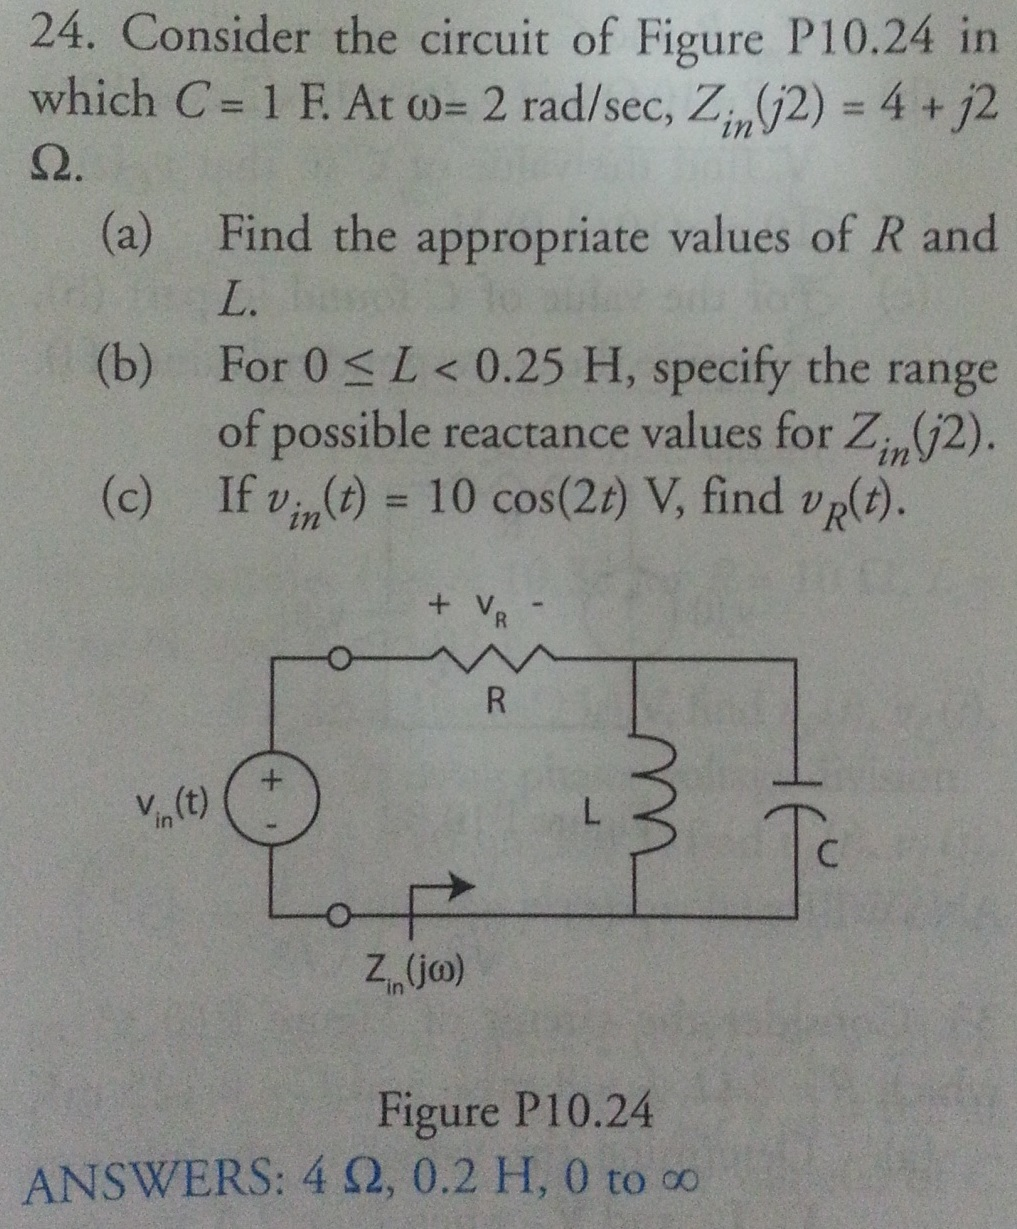 Consider the circuit of Figure P10.24 in which C =